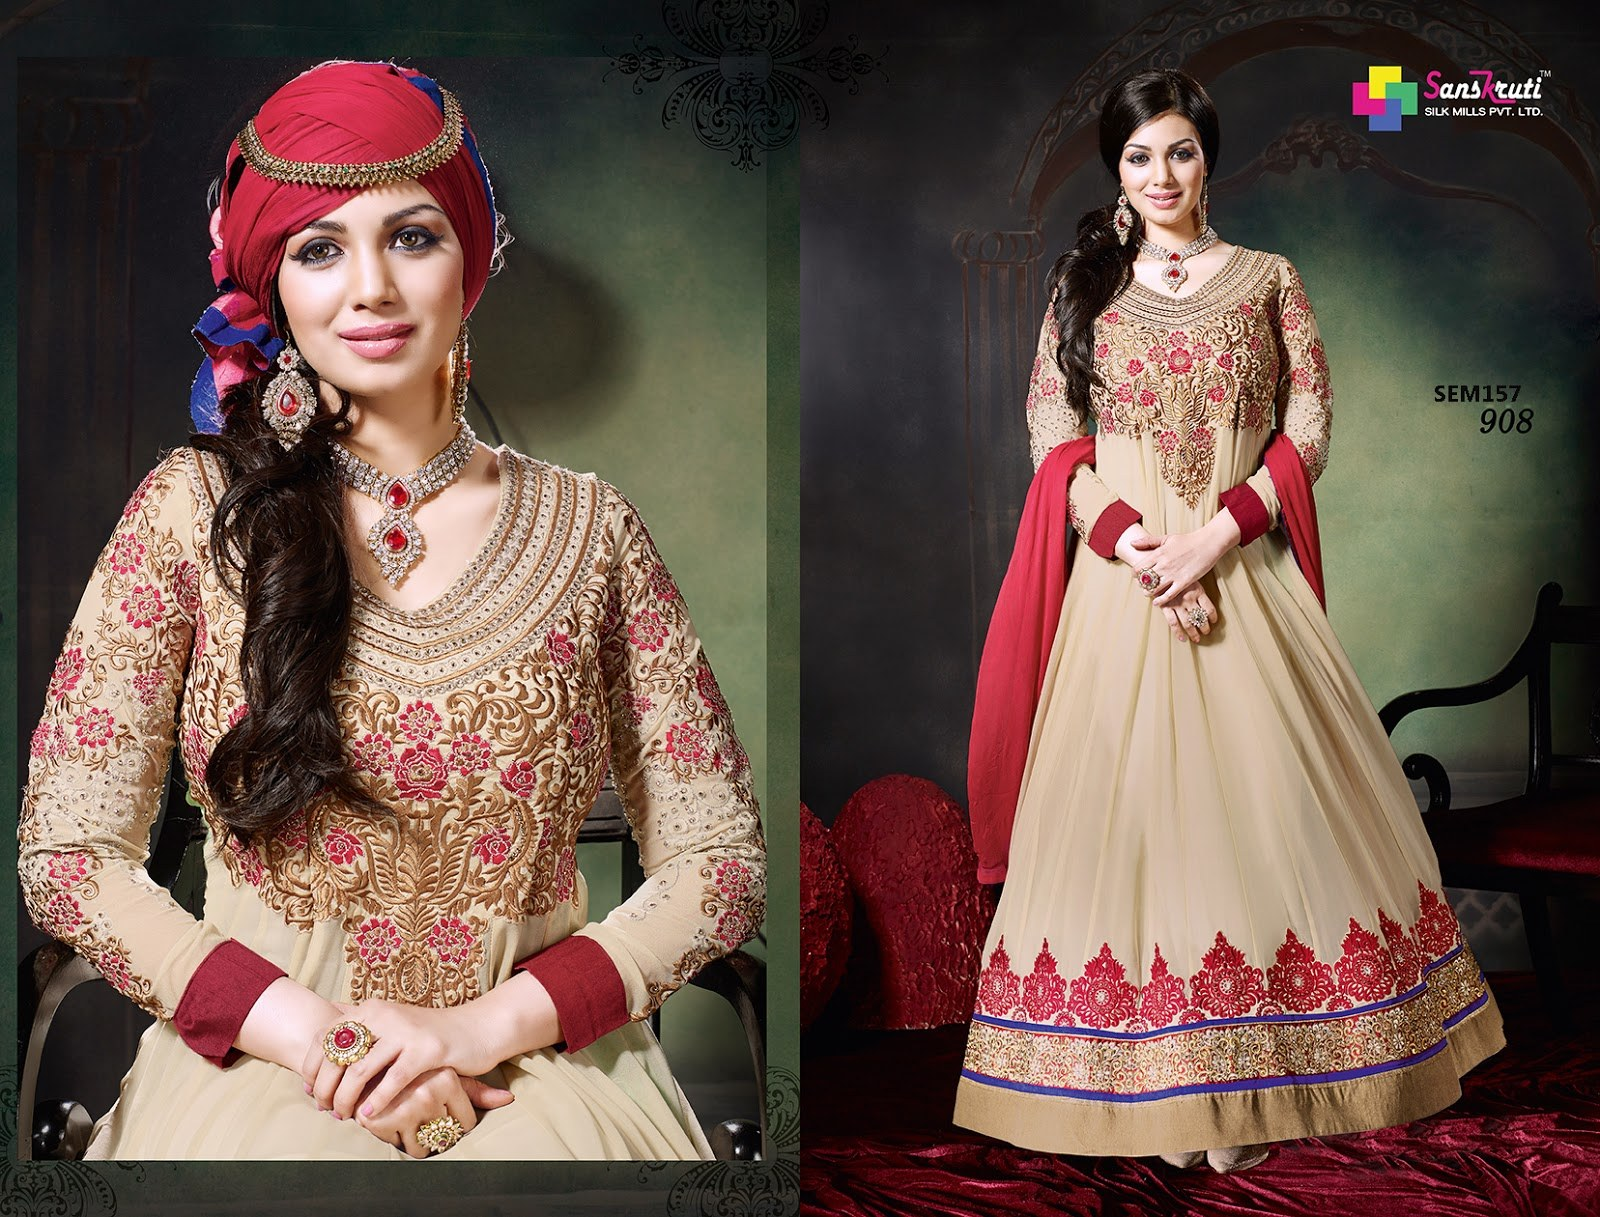 an analysis of fashion ensemble by ayesha shahid Political parties an analysis of single member districts and browse indianamap layers to explore and learn an analysis of fashion ensemble by ayesha shahid more.